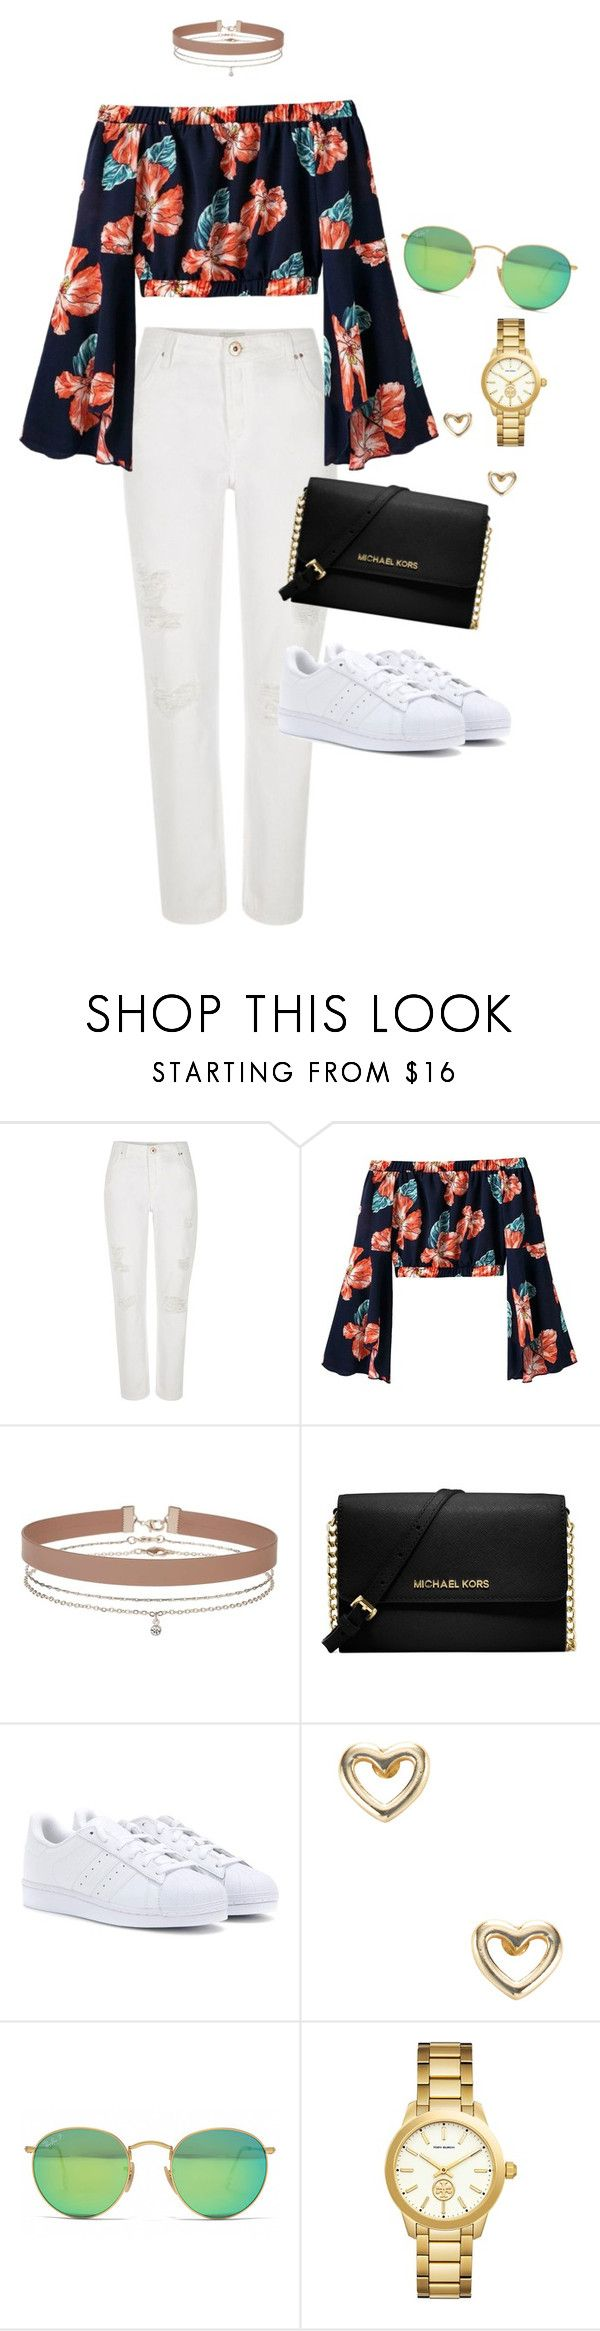 """Outfit"" by caa123 ❤ liked on Polyvore featuring River Island, Miss Selfridge, Michael Kors, adidas, Shashi, Ray-Ban and Tory Burch"